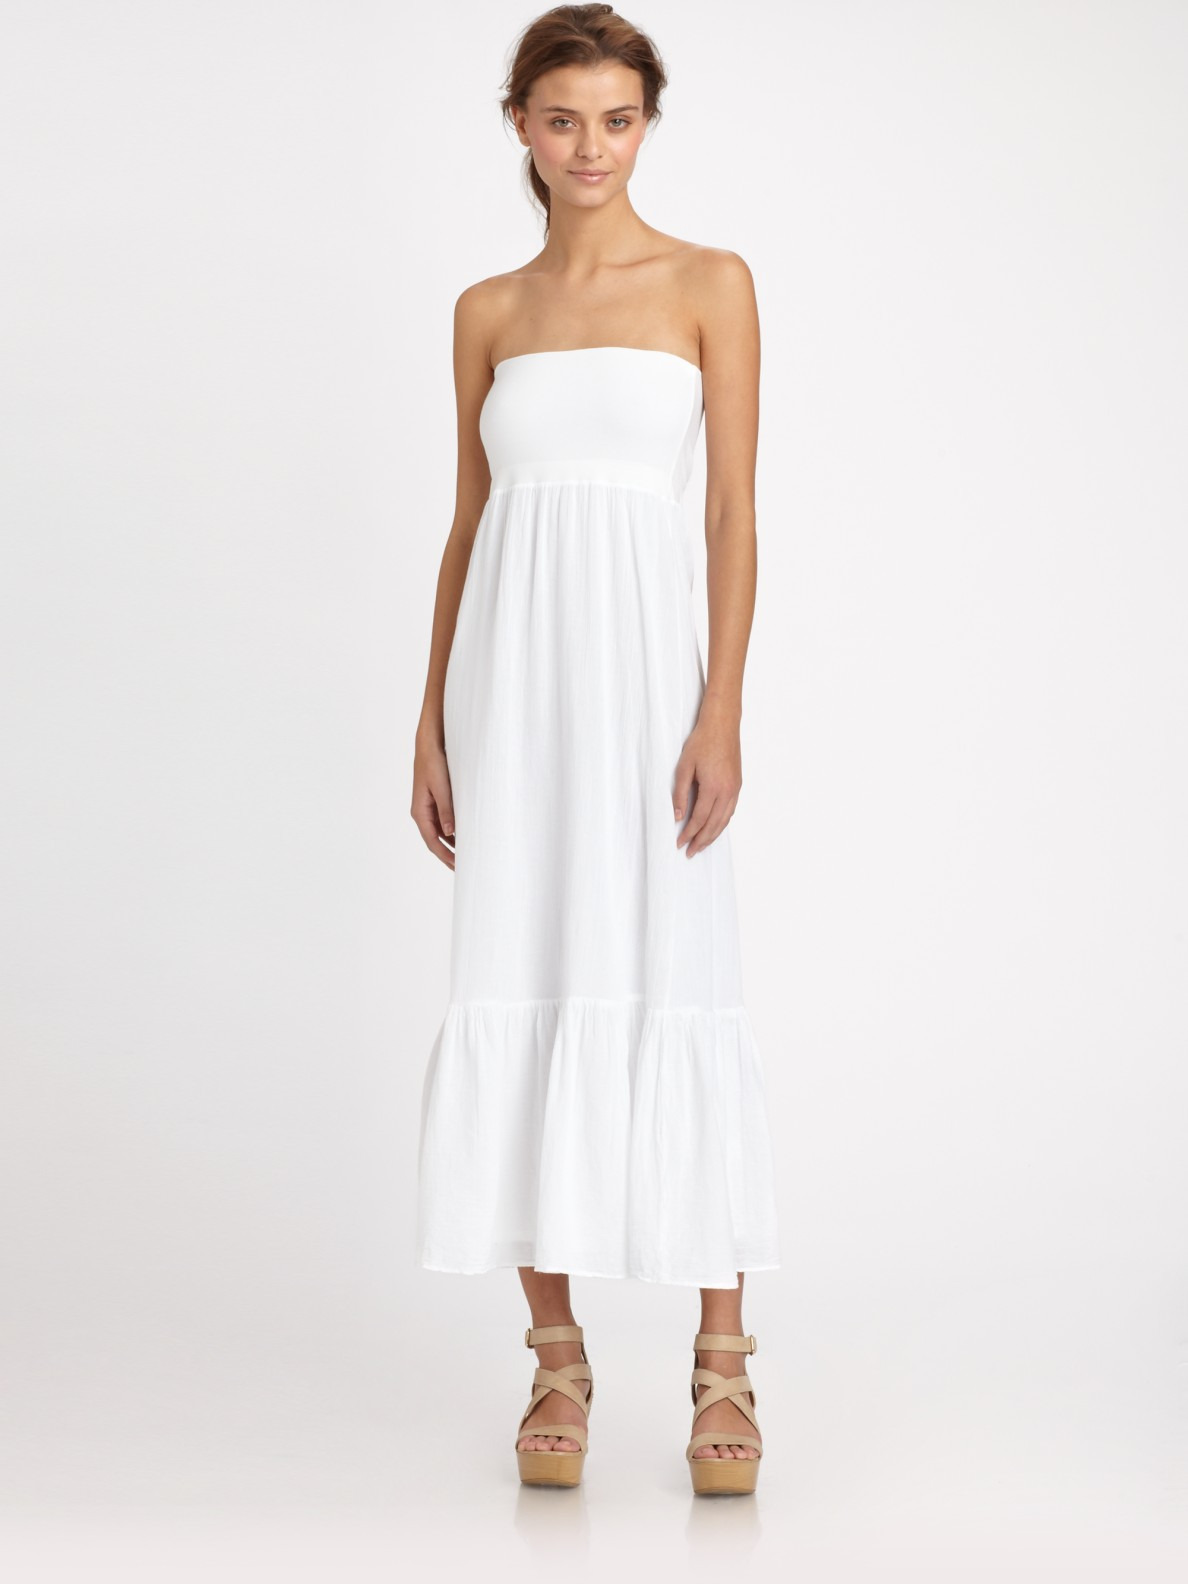 Splendid Convertible Cotton Tube Maxi Dress in White | Lyst